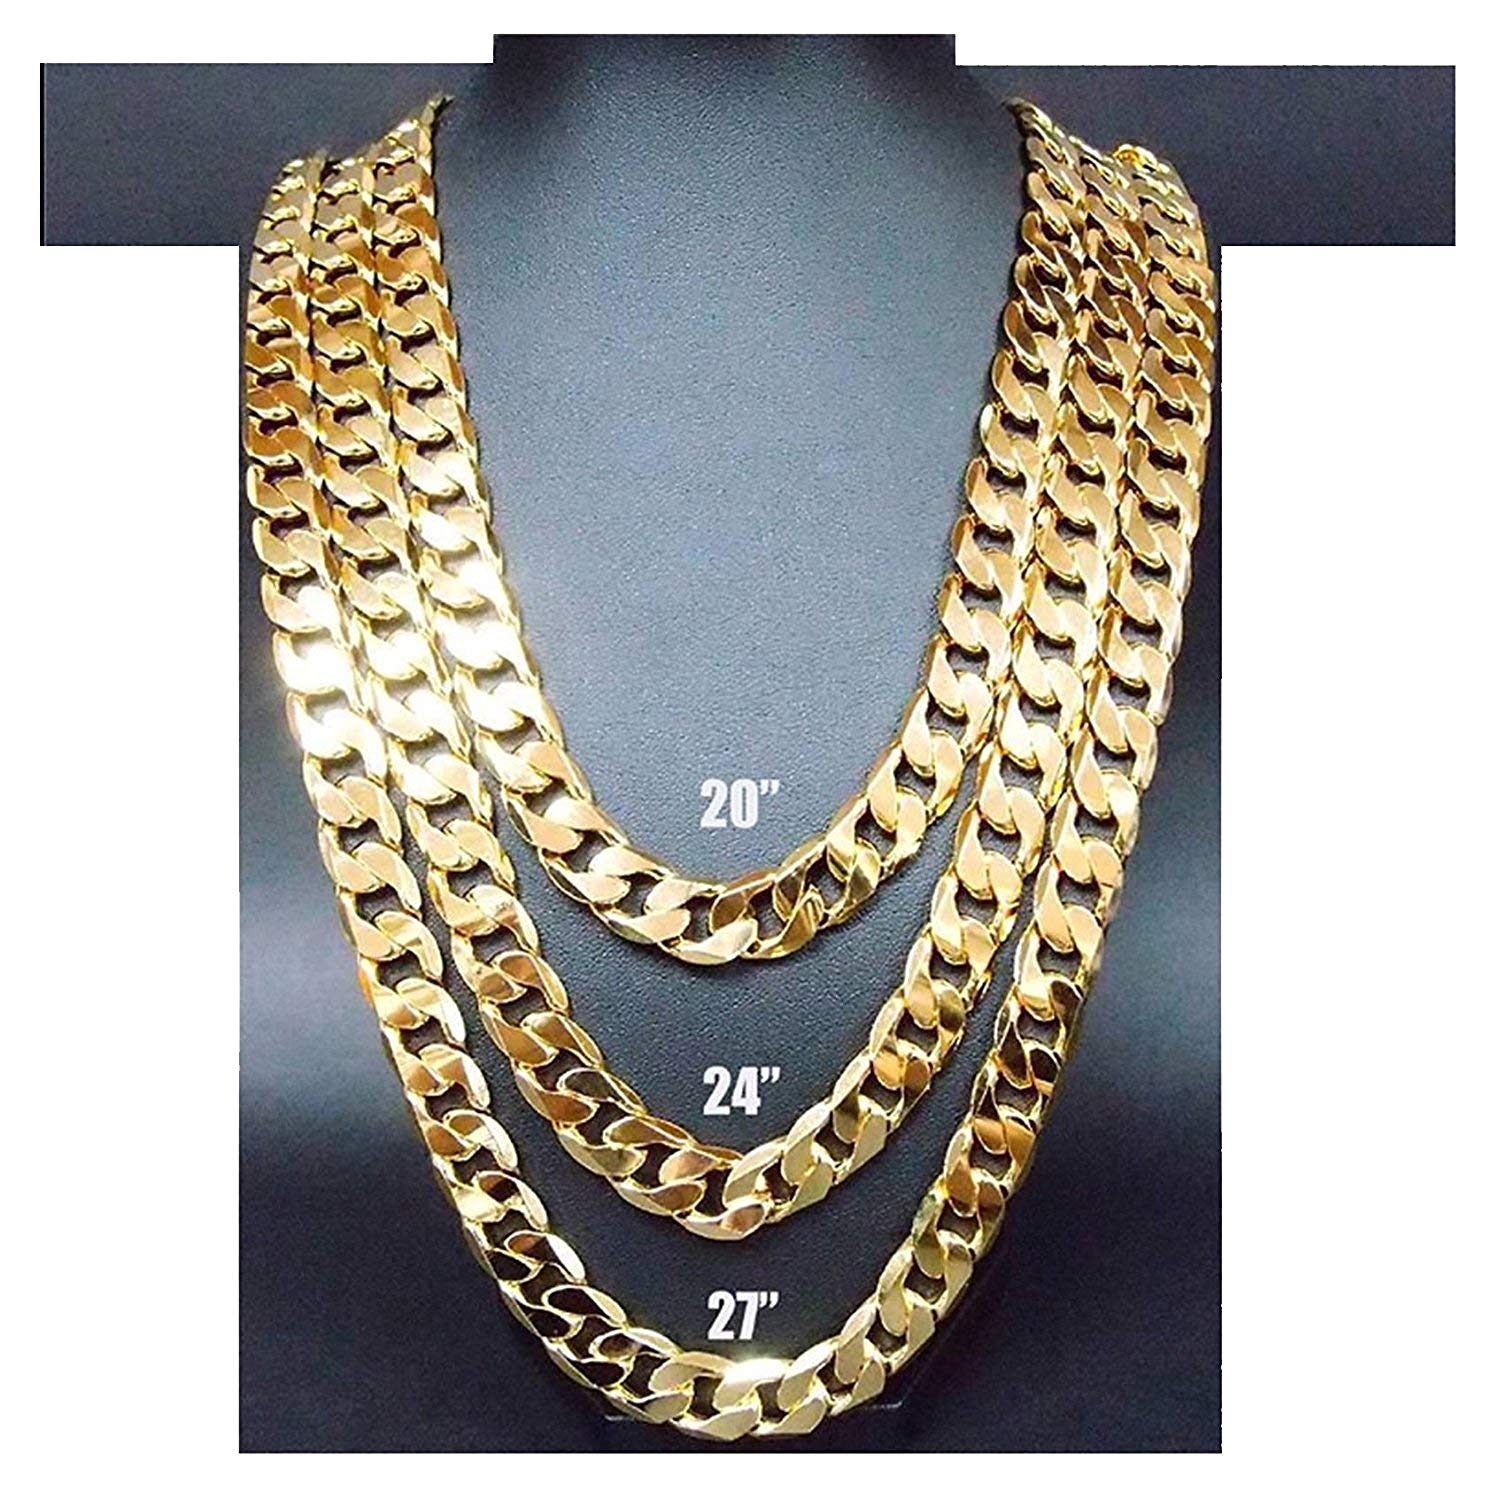 507fe2cb5 Get Quotations · 14K Gold Chain Necklace 9MM Smooth Cuban Curb Link Tarnish  Resistant fashion Jewelry Diamond Cut for